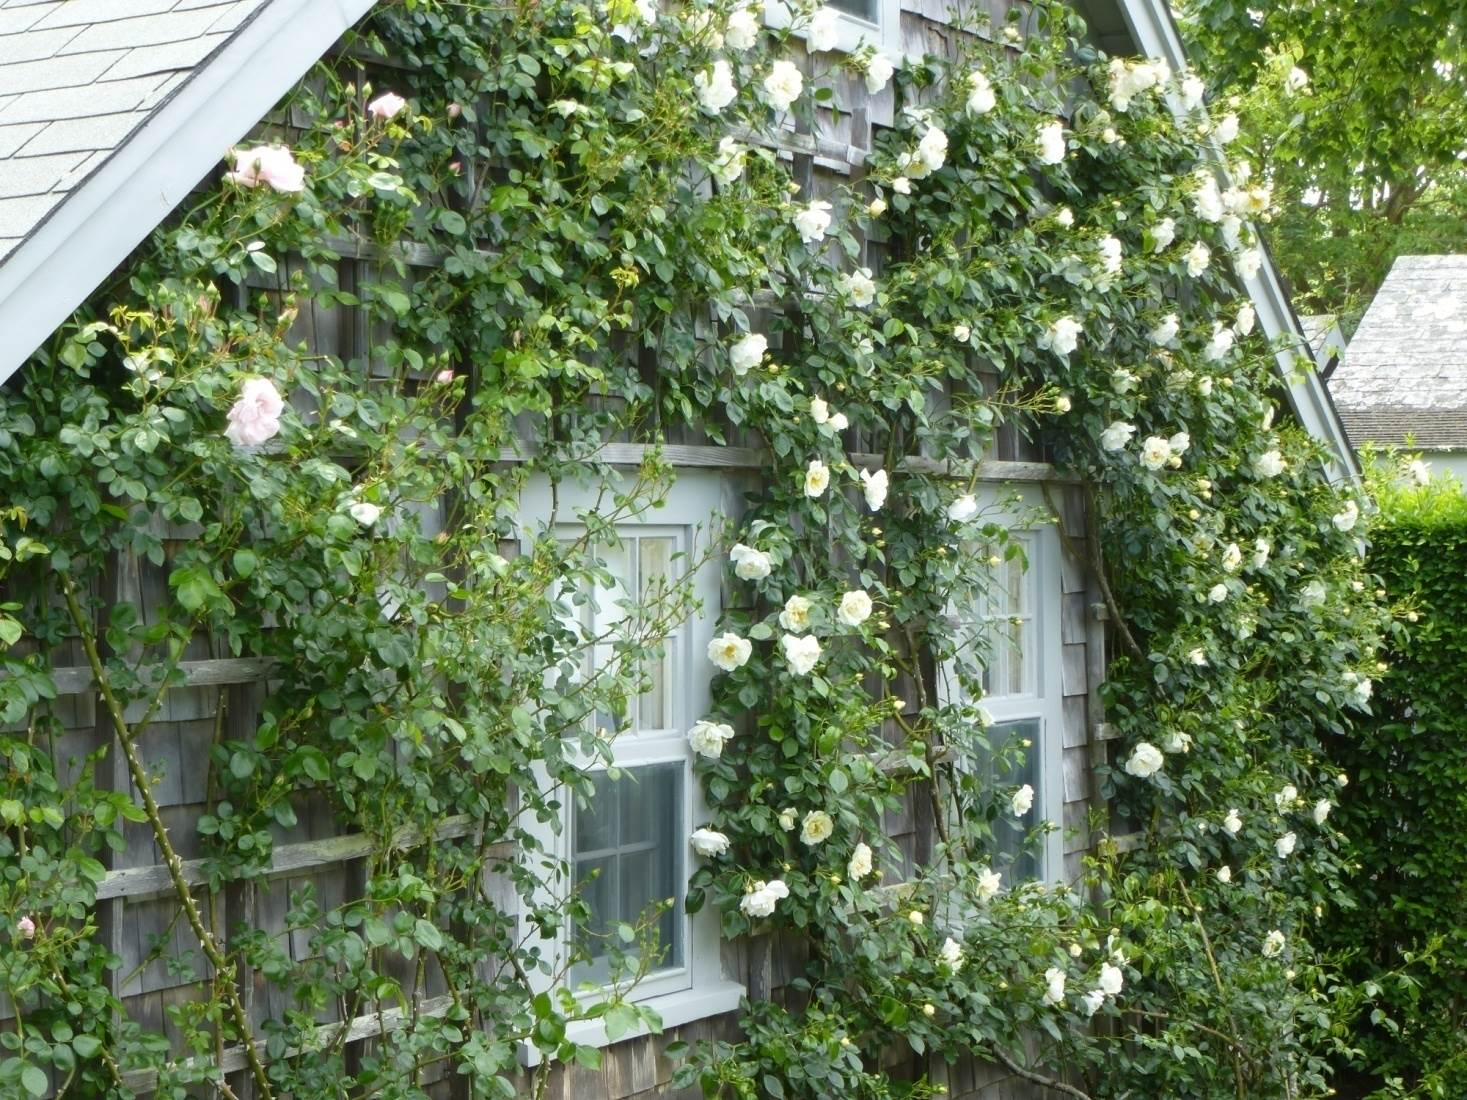 Zephirine Drouhin Climbing Rose getting started with climbing roses – asheville blue ridge